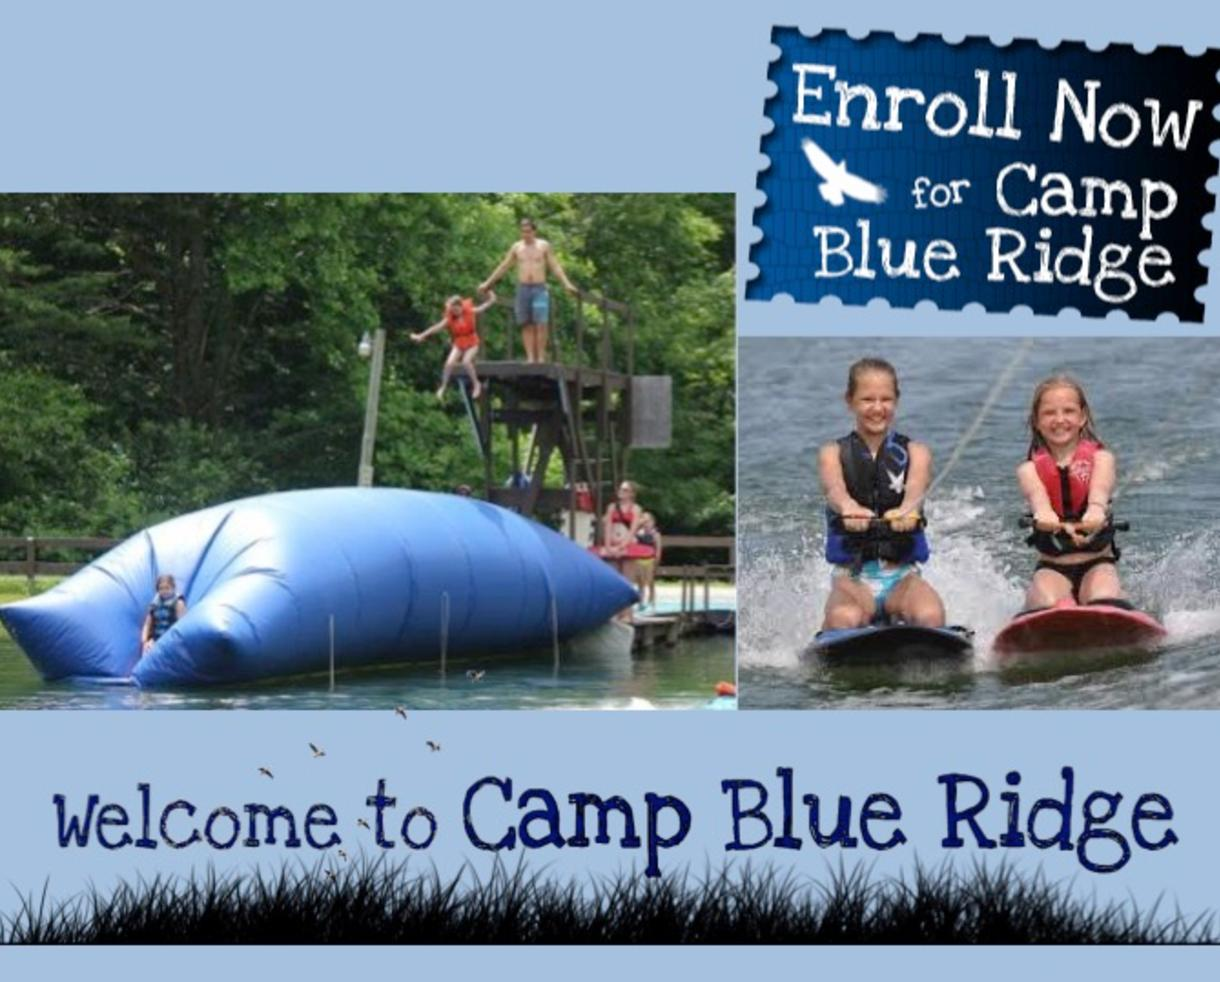 $1300 for 2-Week Camp Blue Ridge Sleepaway Camp for Ages 7-16 - Georgia ($2600 Value - 50% Off)